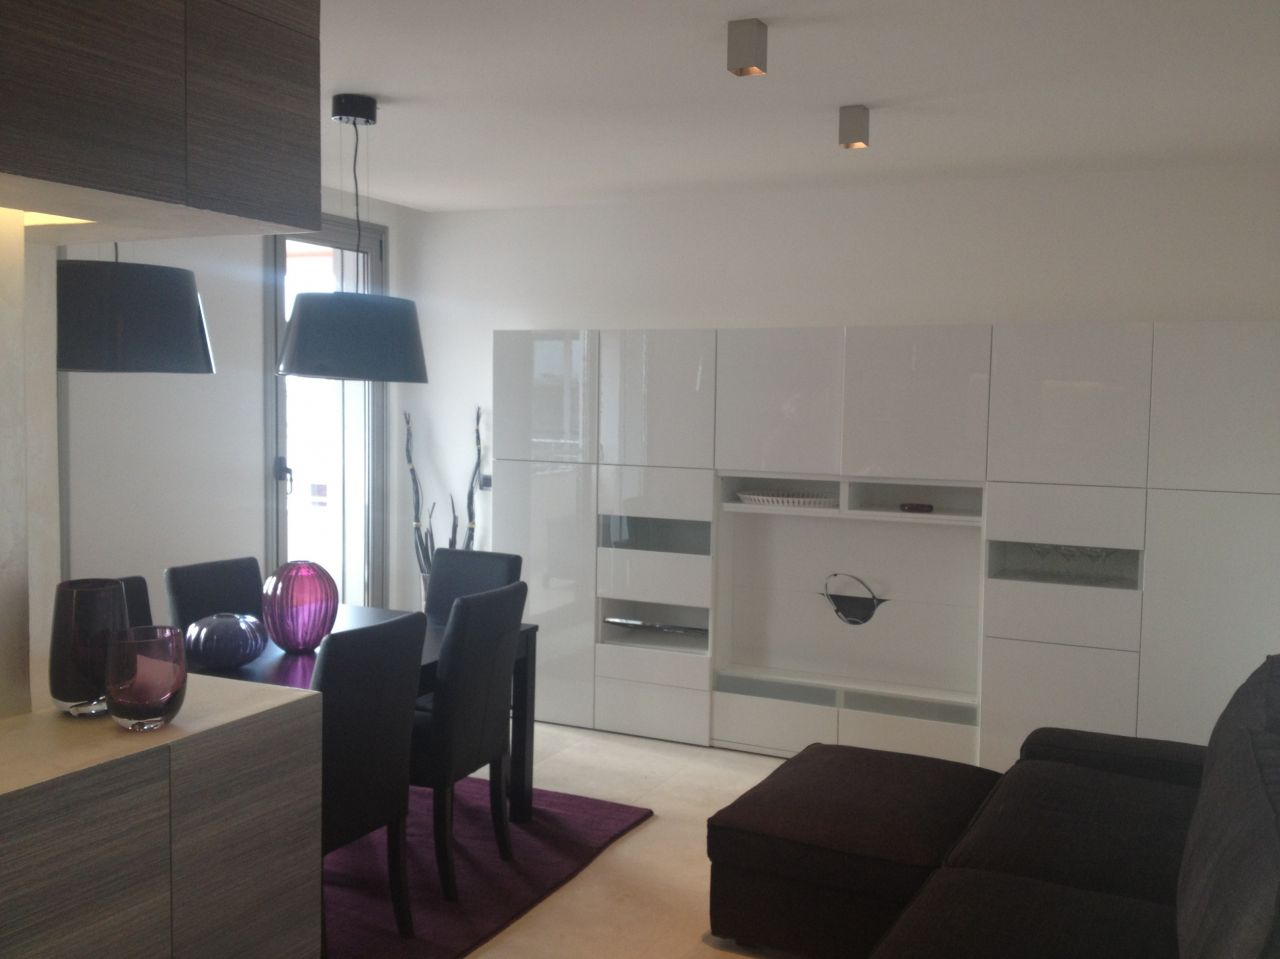 2 Bedroom Apartment for rent in Tirana